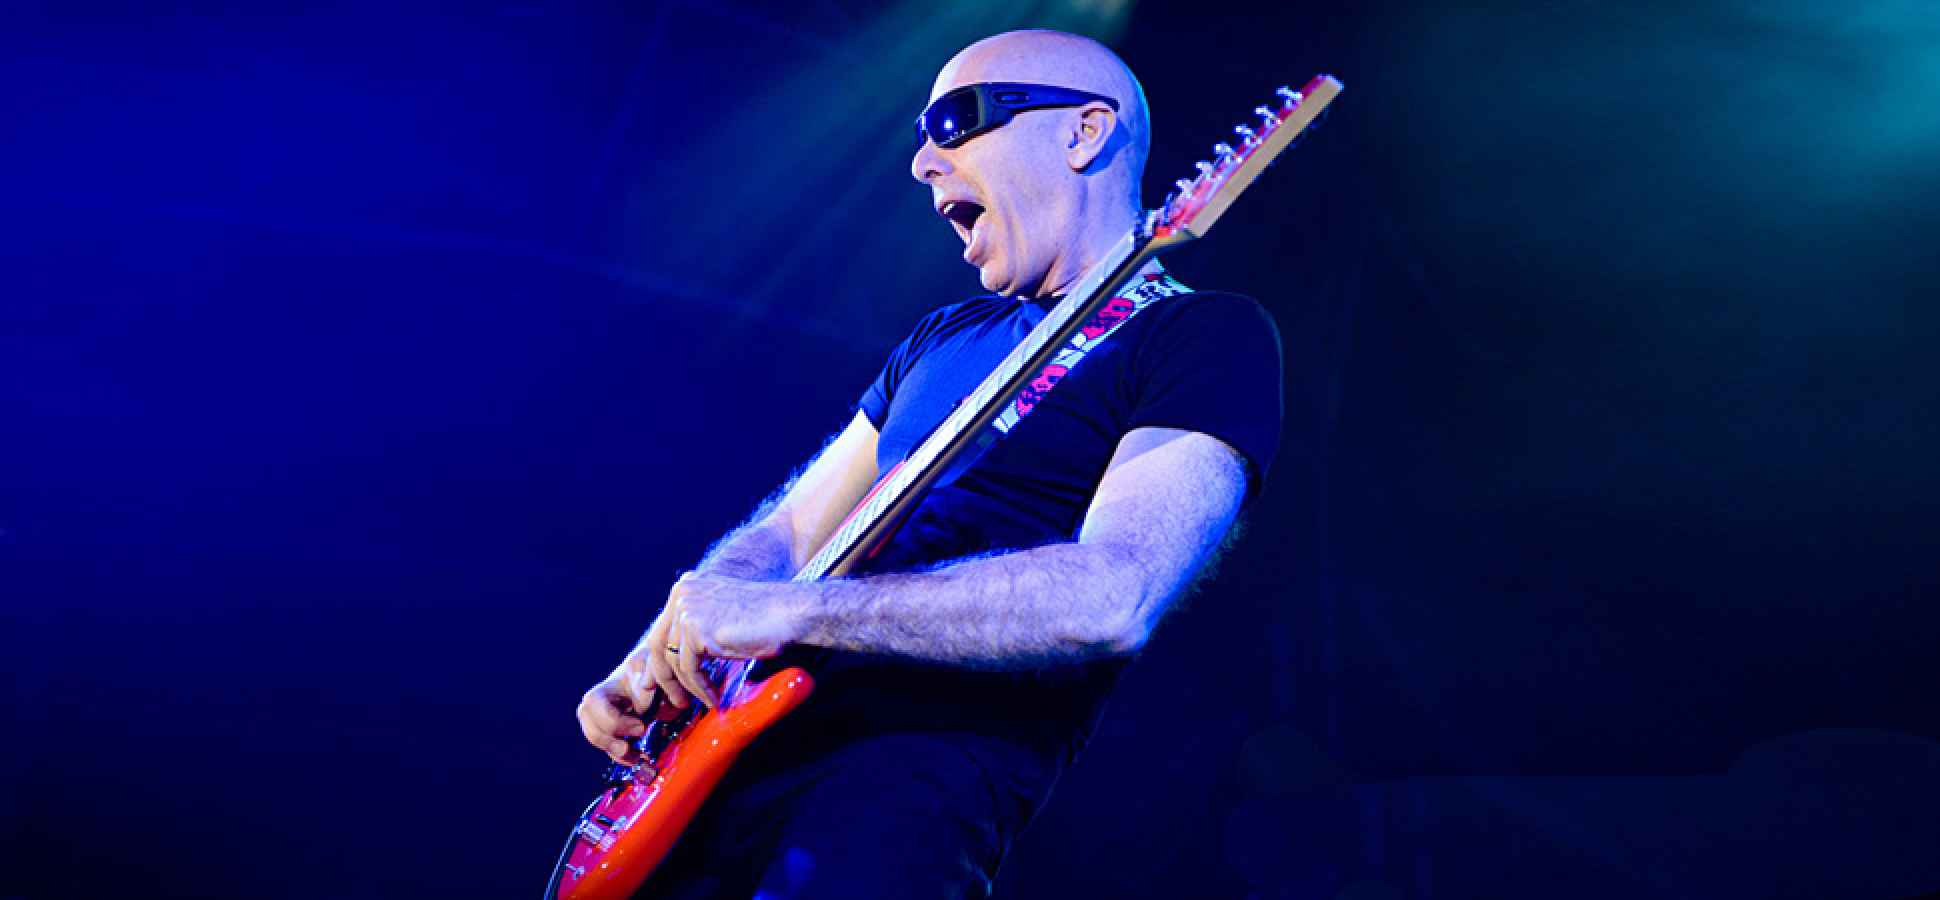 The Unexpected Entrepreneur: One-on-One With Joe Satriani